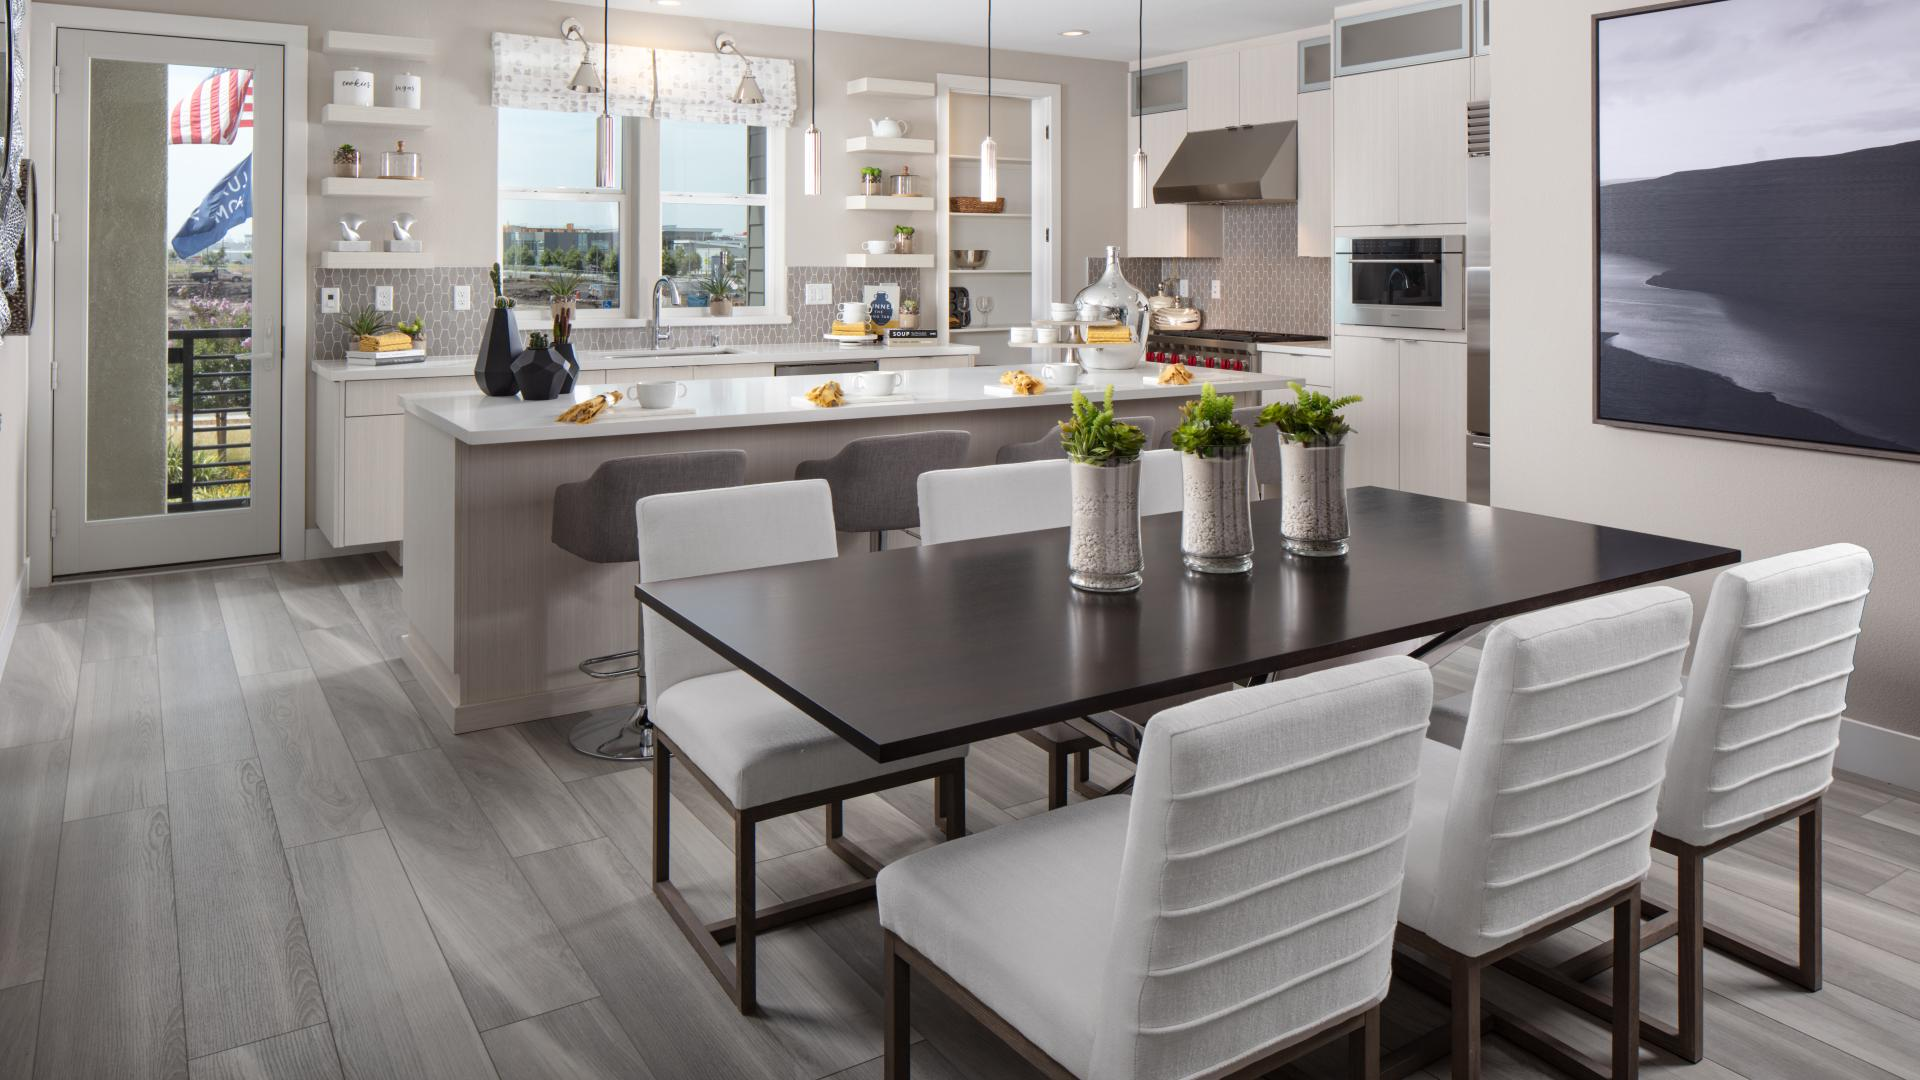 Spacious kitchen and casual dining area perfect for entertaining